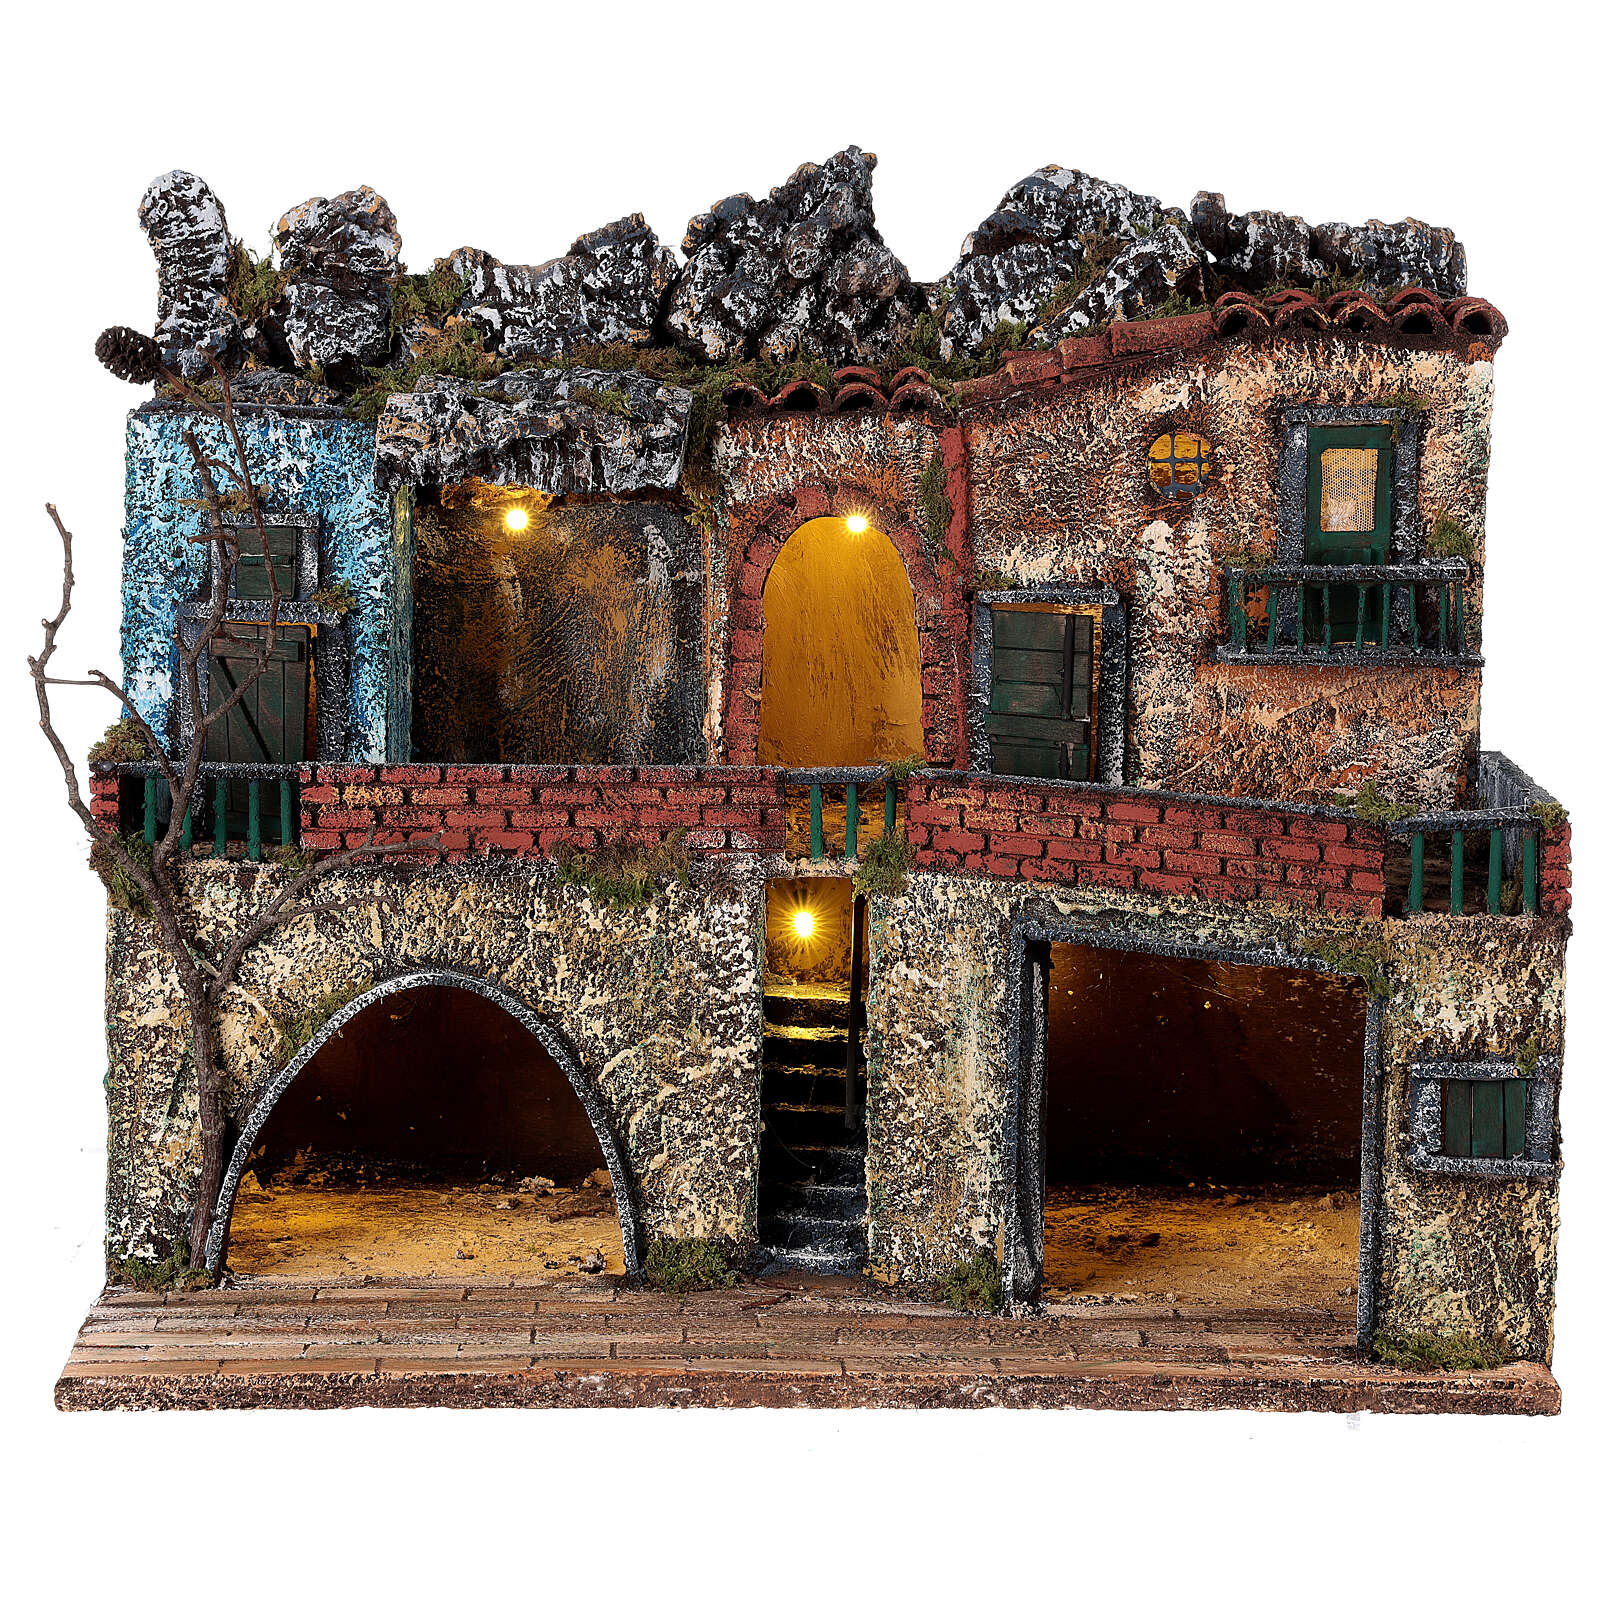 Lighted village Neapolitan nativity two-story 40x50x30 cm for 8-10 cm figurines 4